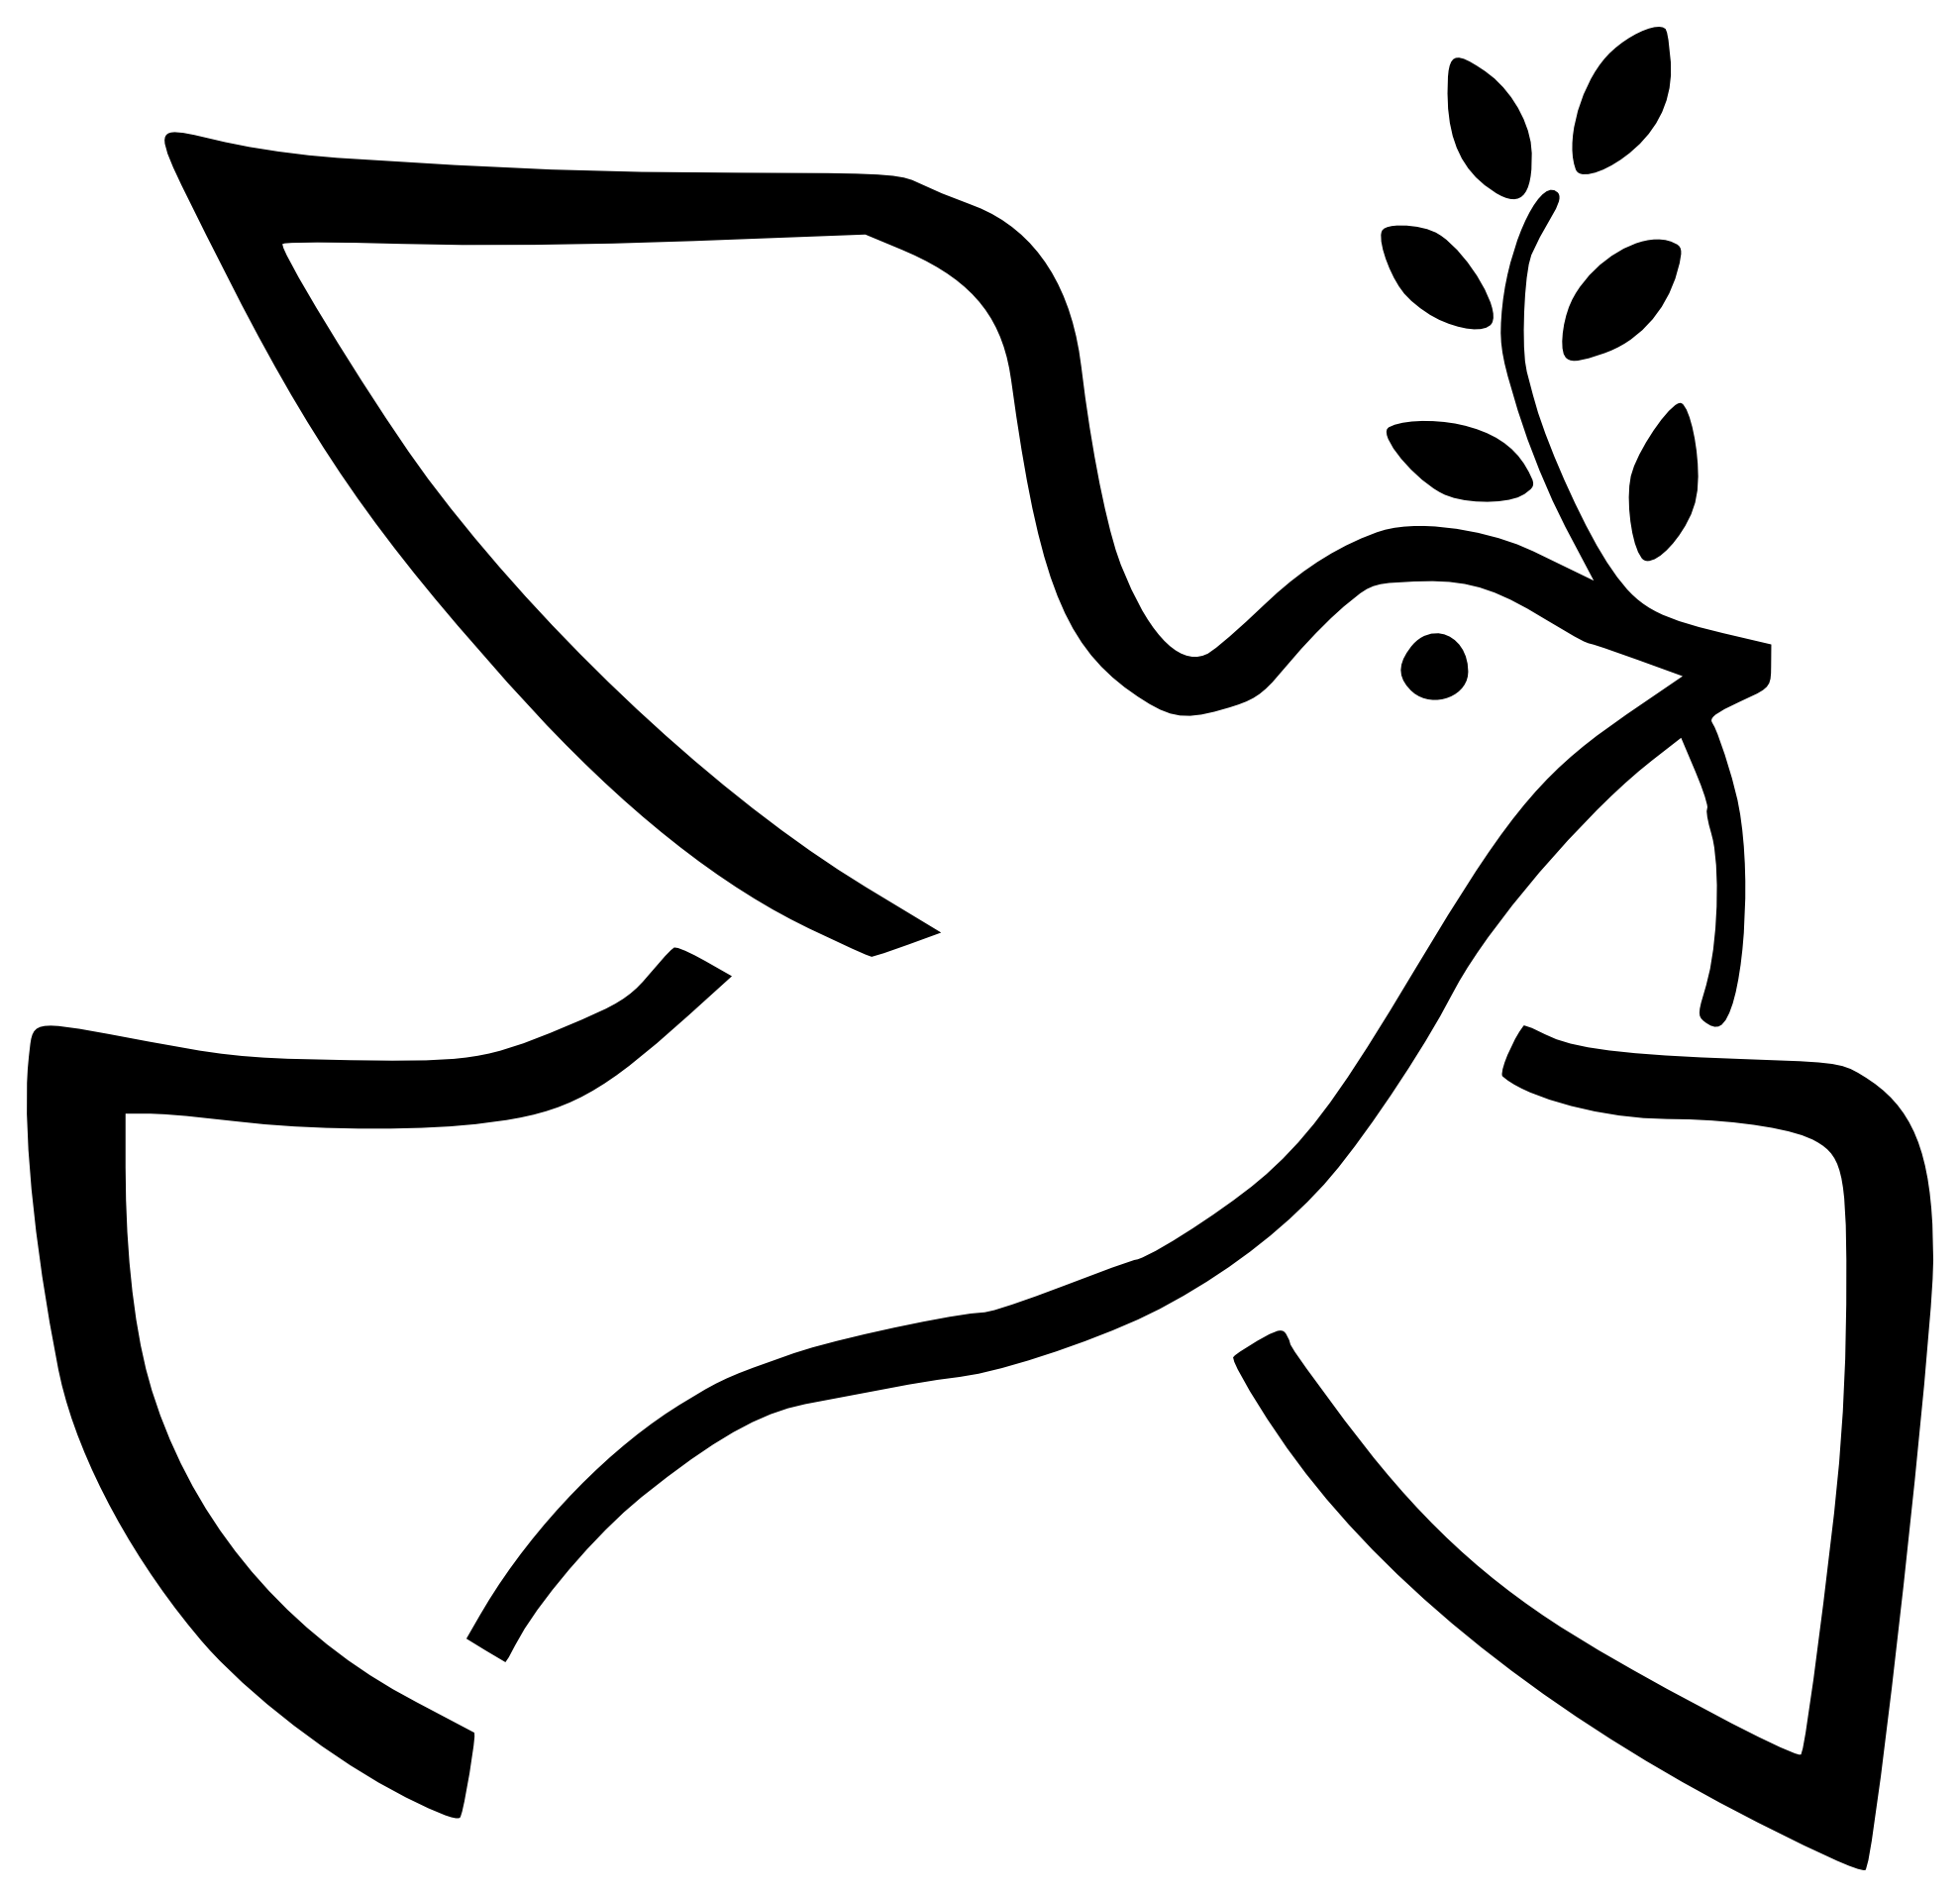 Dove & cross clipart. Black and white clipartfest